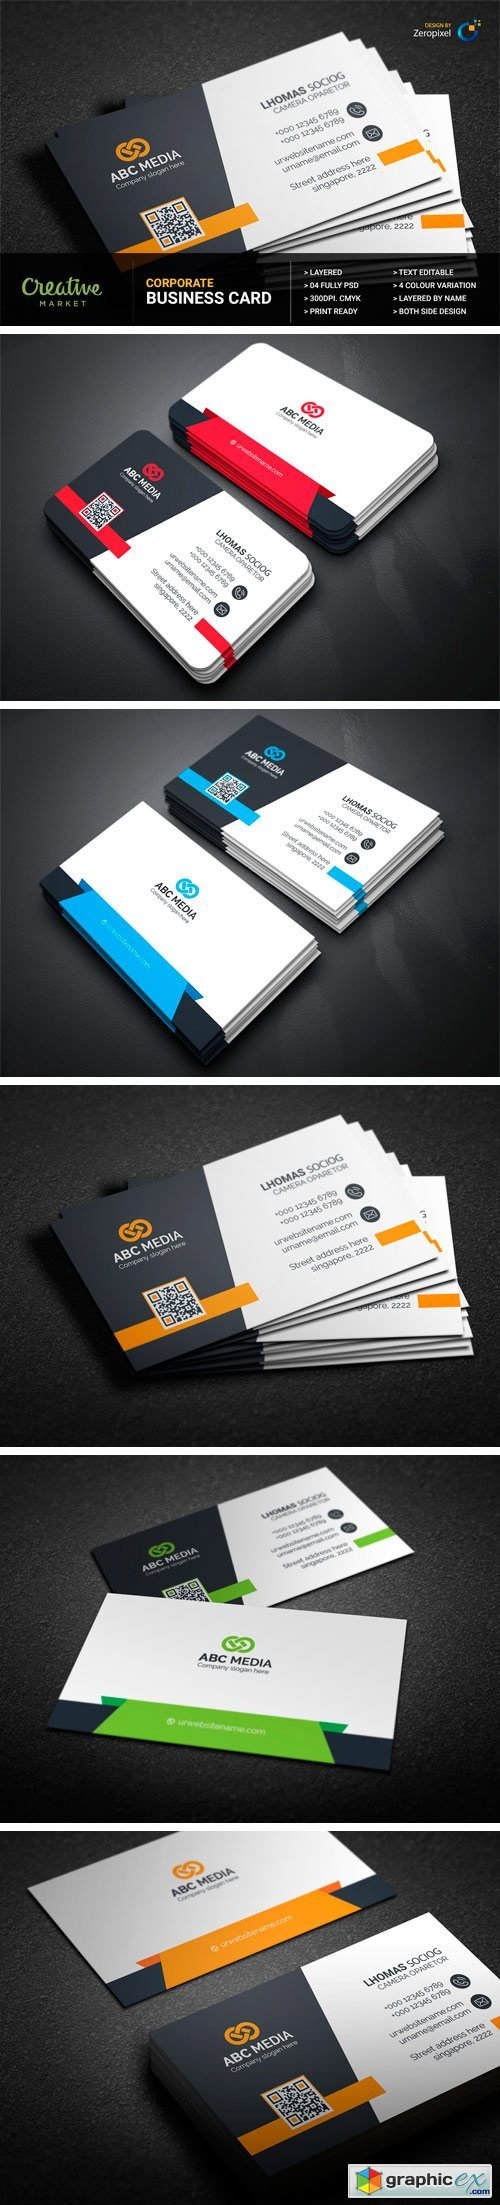 Business Card  1188603